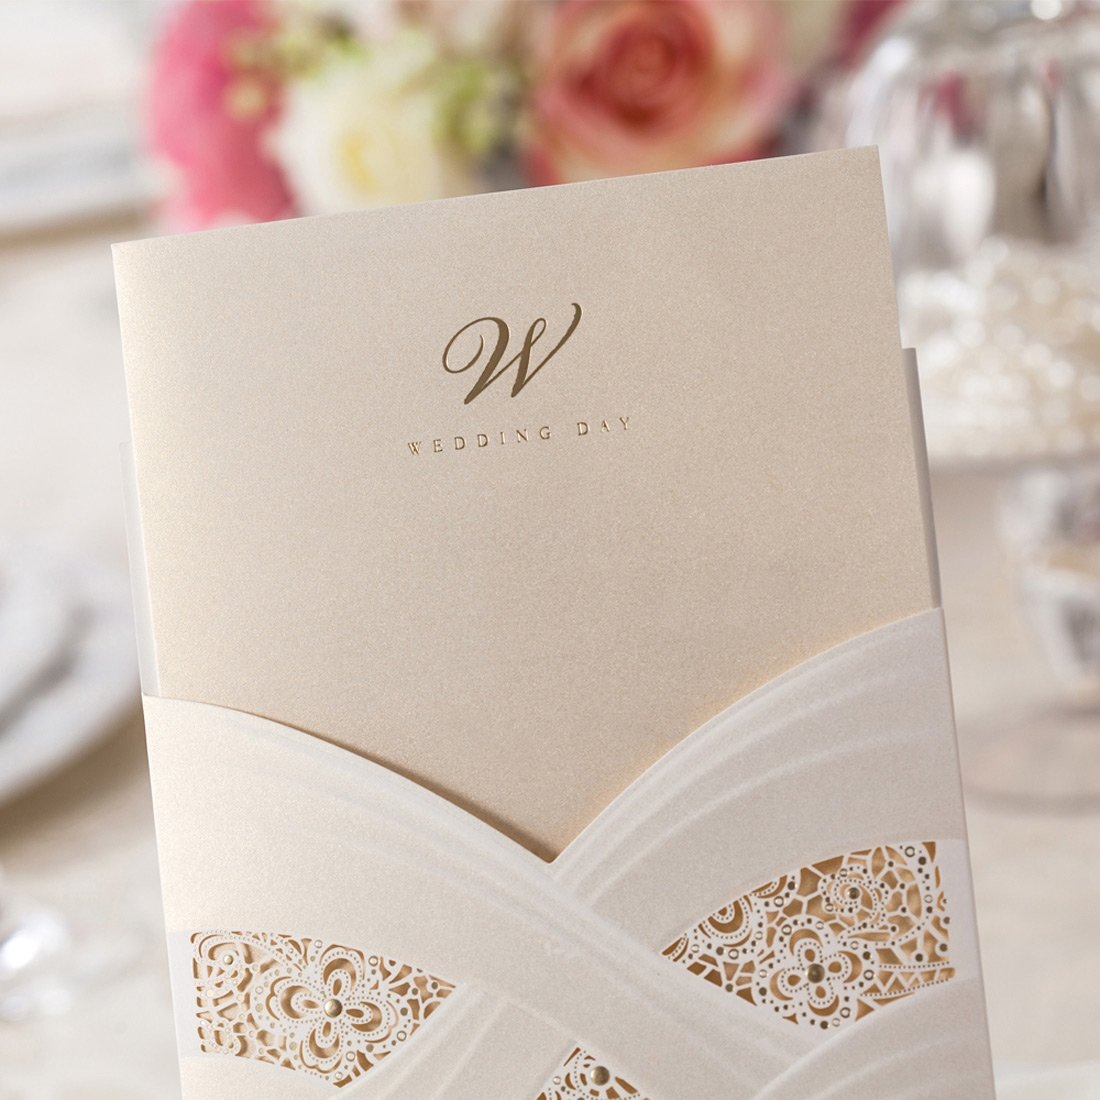 WISHMADE 「ECHOES OF LOVE」 White Laser Cut Wedding Invitations 50pieces Co Ltd. Floral Design Vertical Invites Printable Holder for Bridal Shower Engagement Paraboda WISHMADE Shanghai